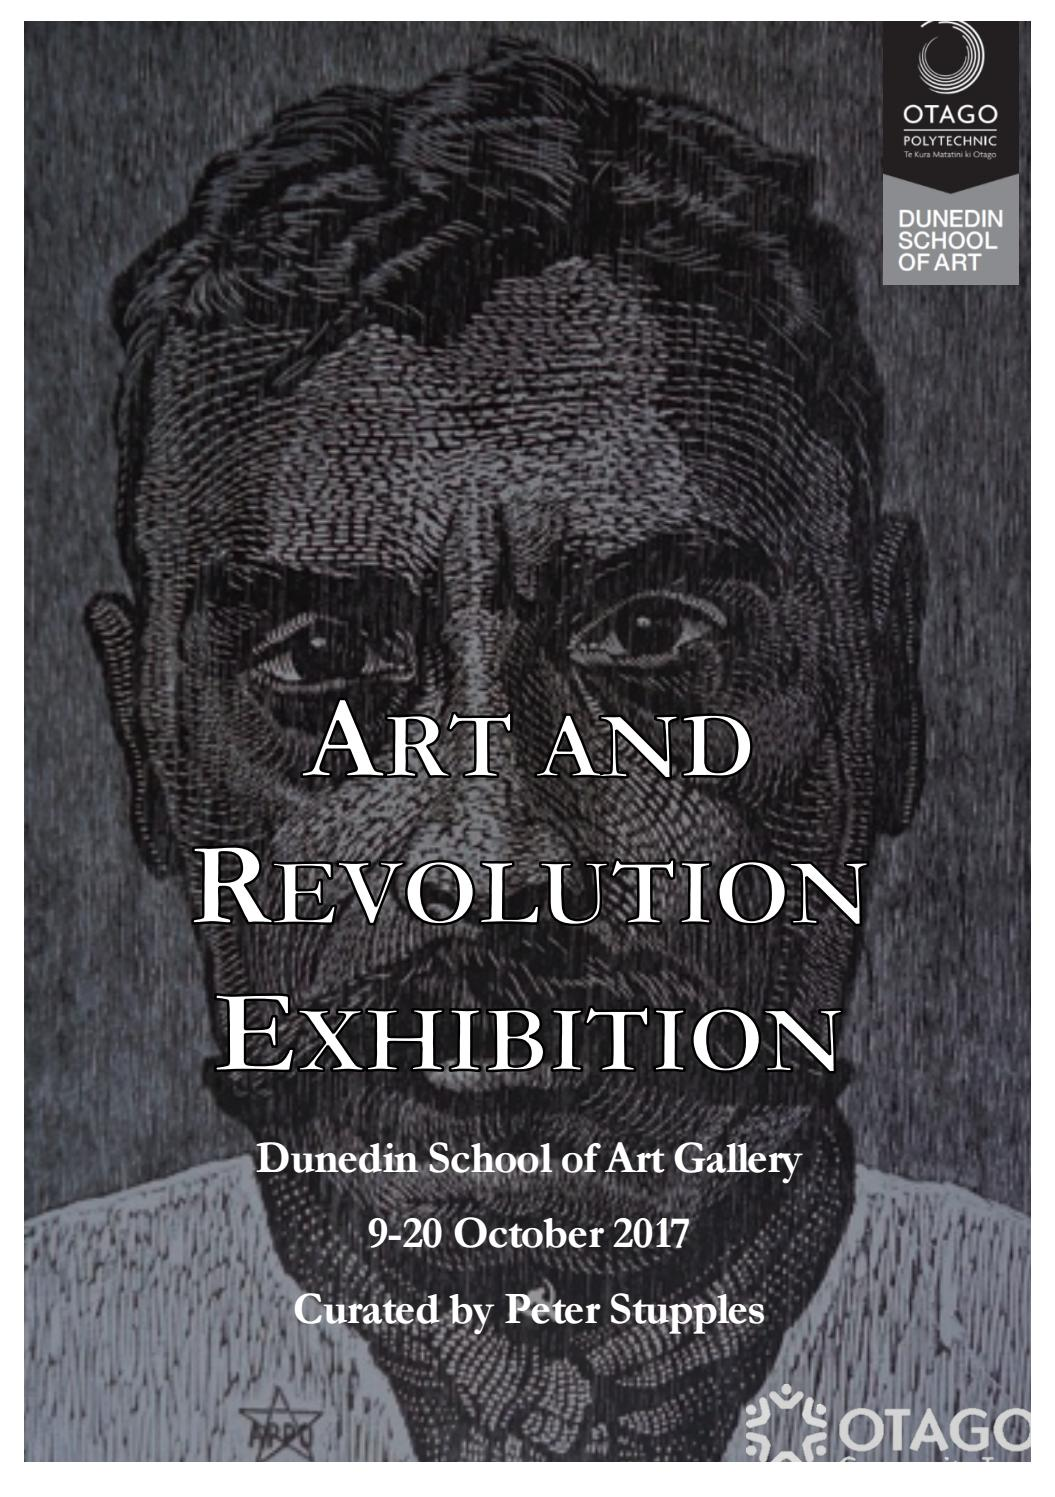 Art and revolution catalogue